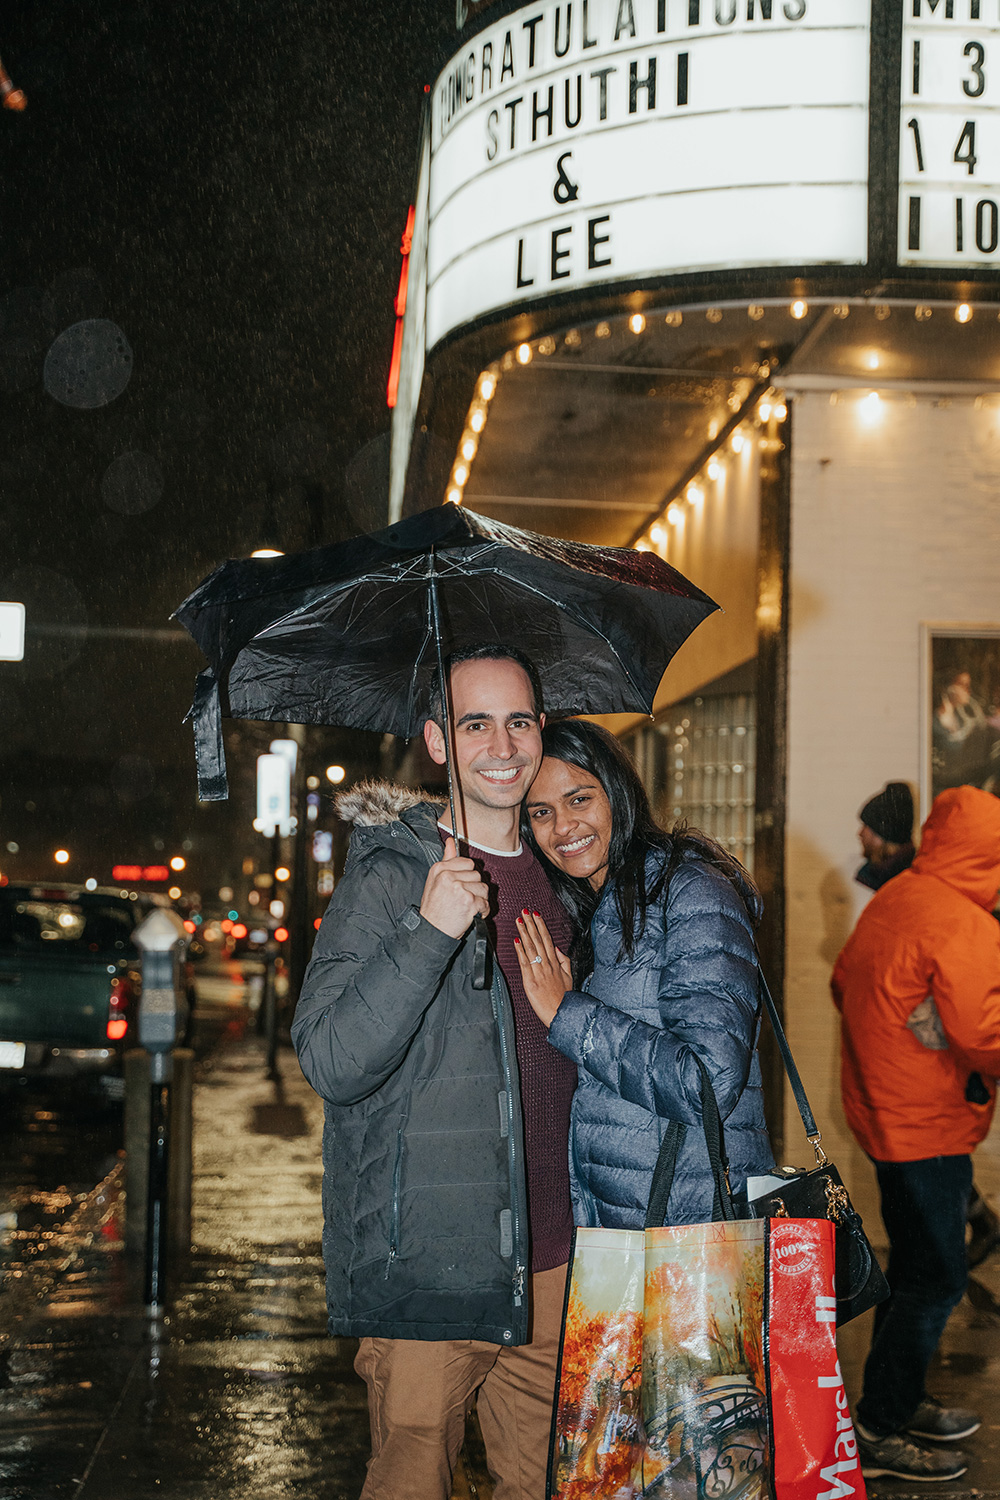 Lee Loechler proposed to his girlfriend Sthuthi David in a movie theater in Boston recently, and had animated versions of themselves put on screen to Sleeping Beauty.